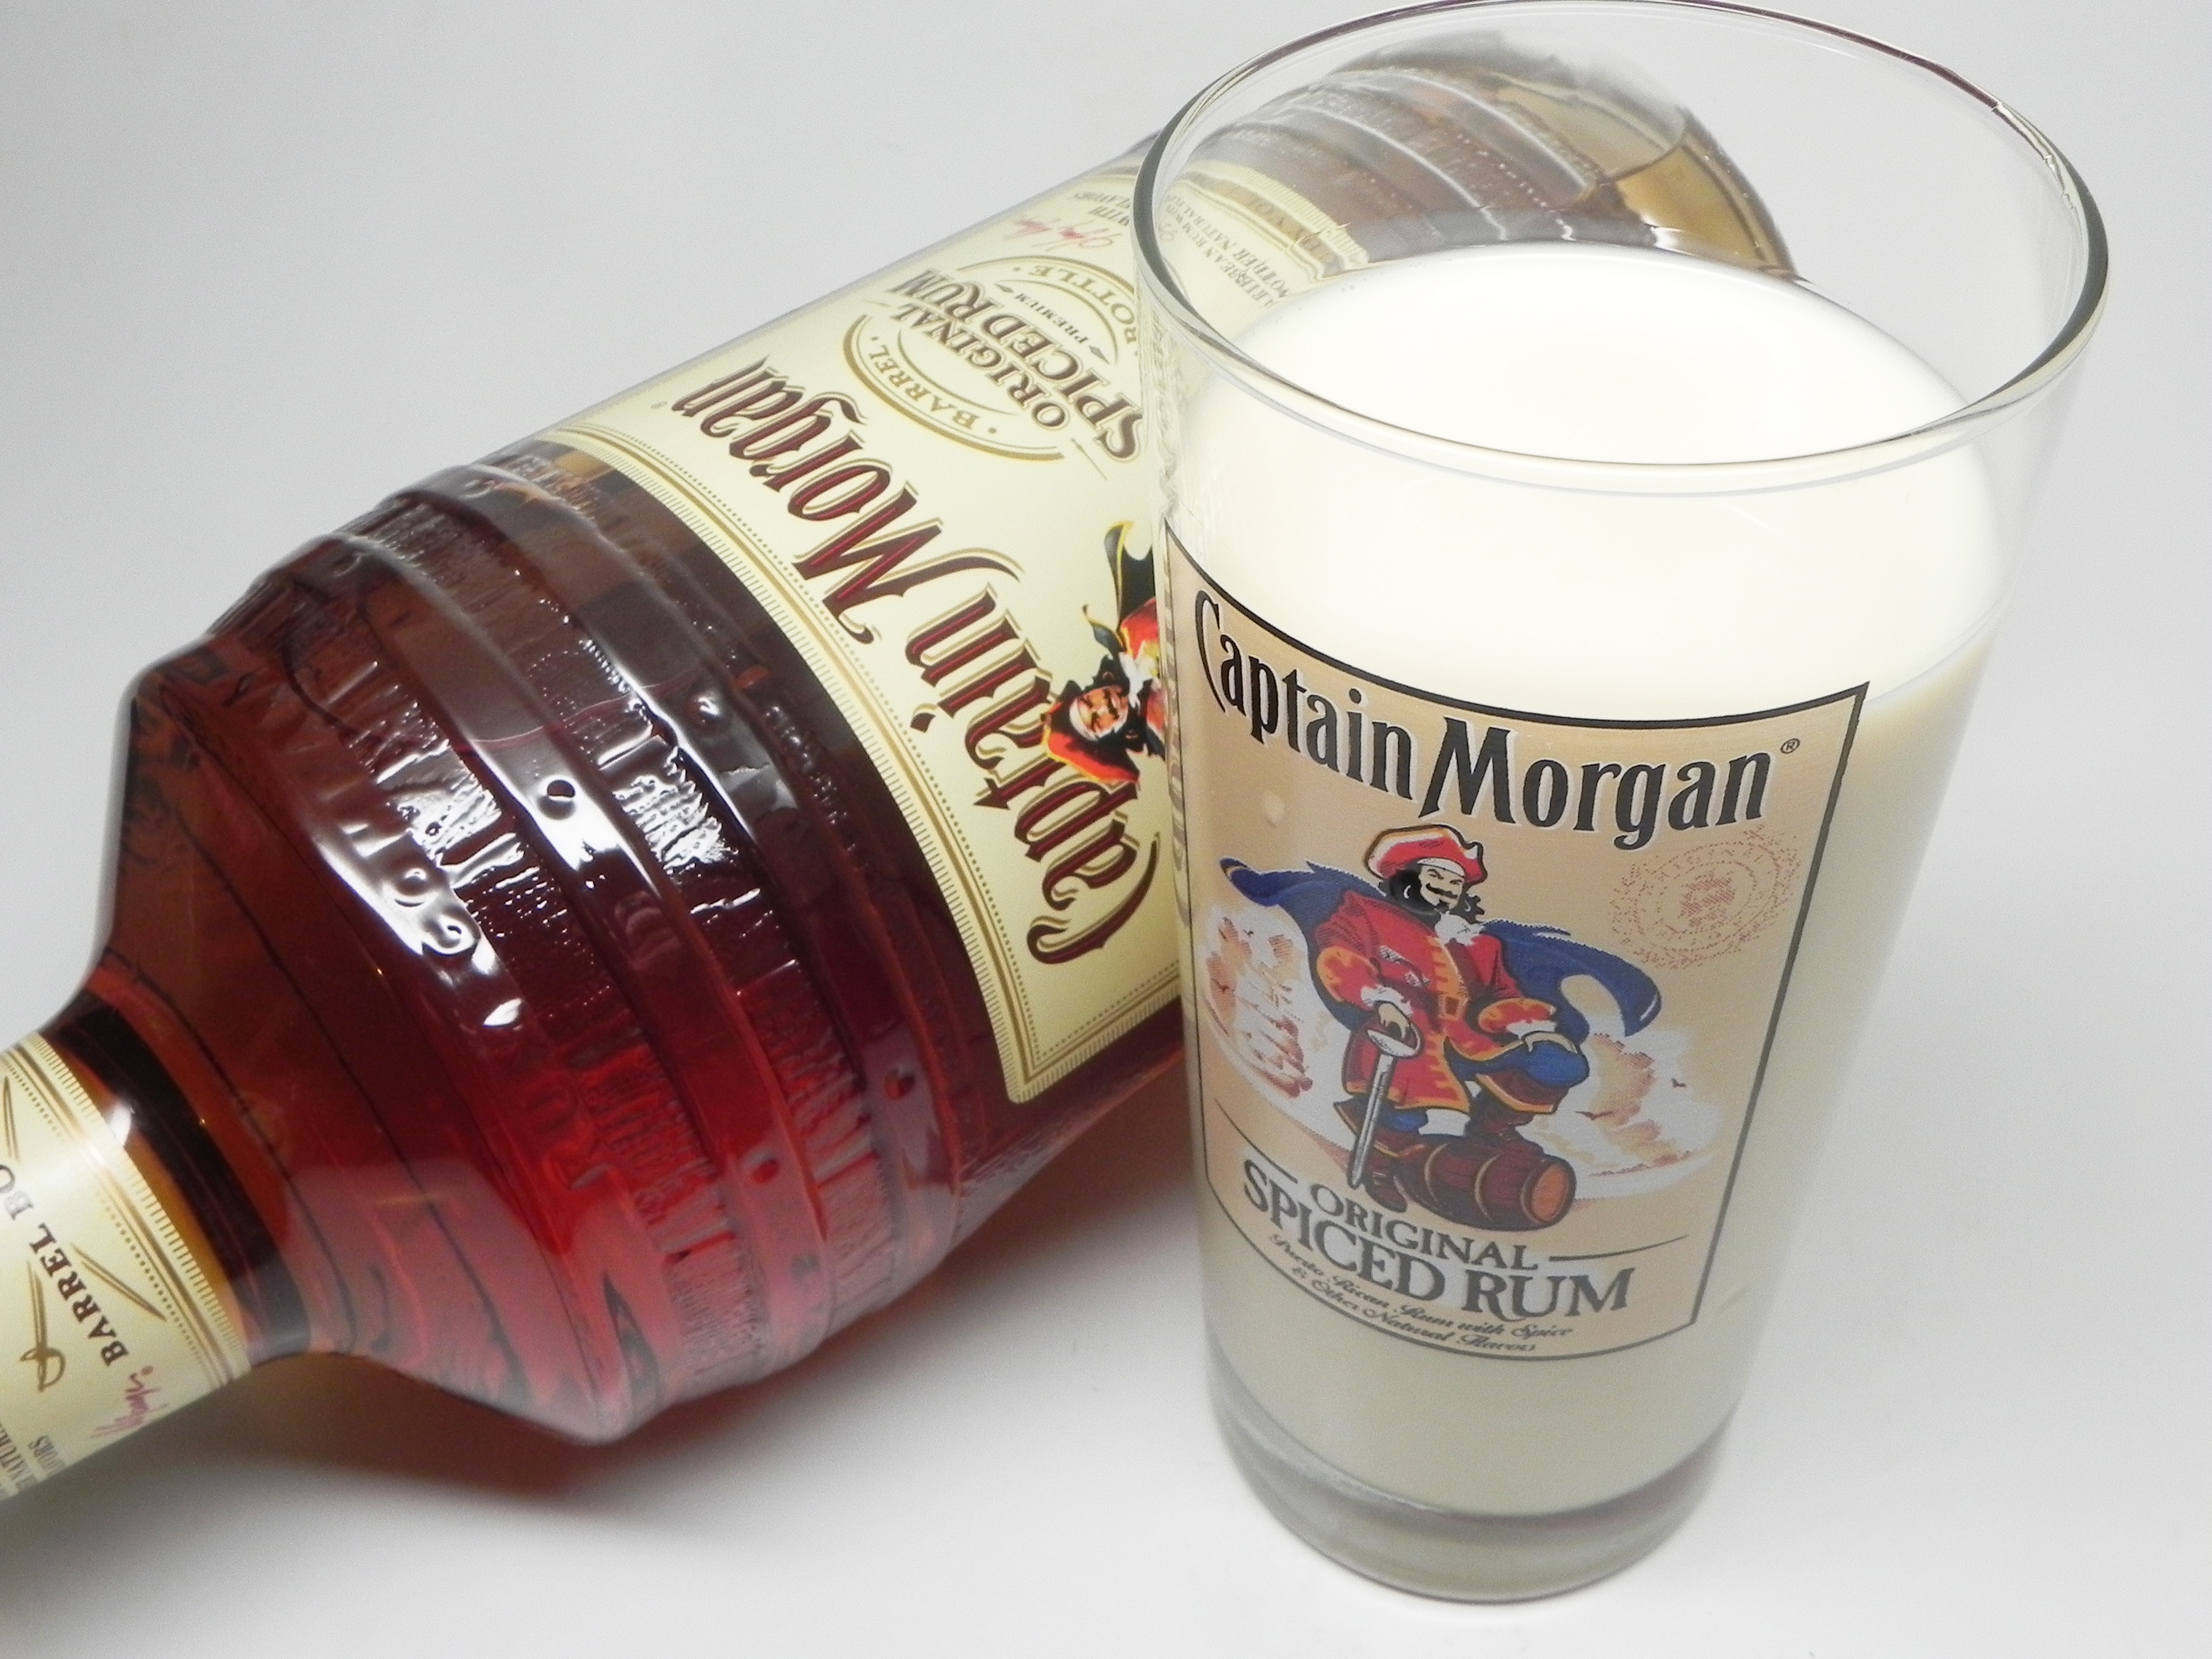 Eggnog (Spiked with Rum) image